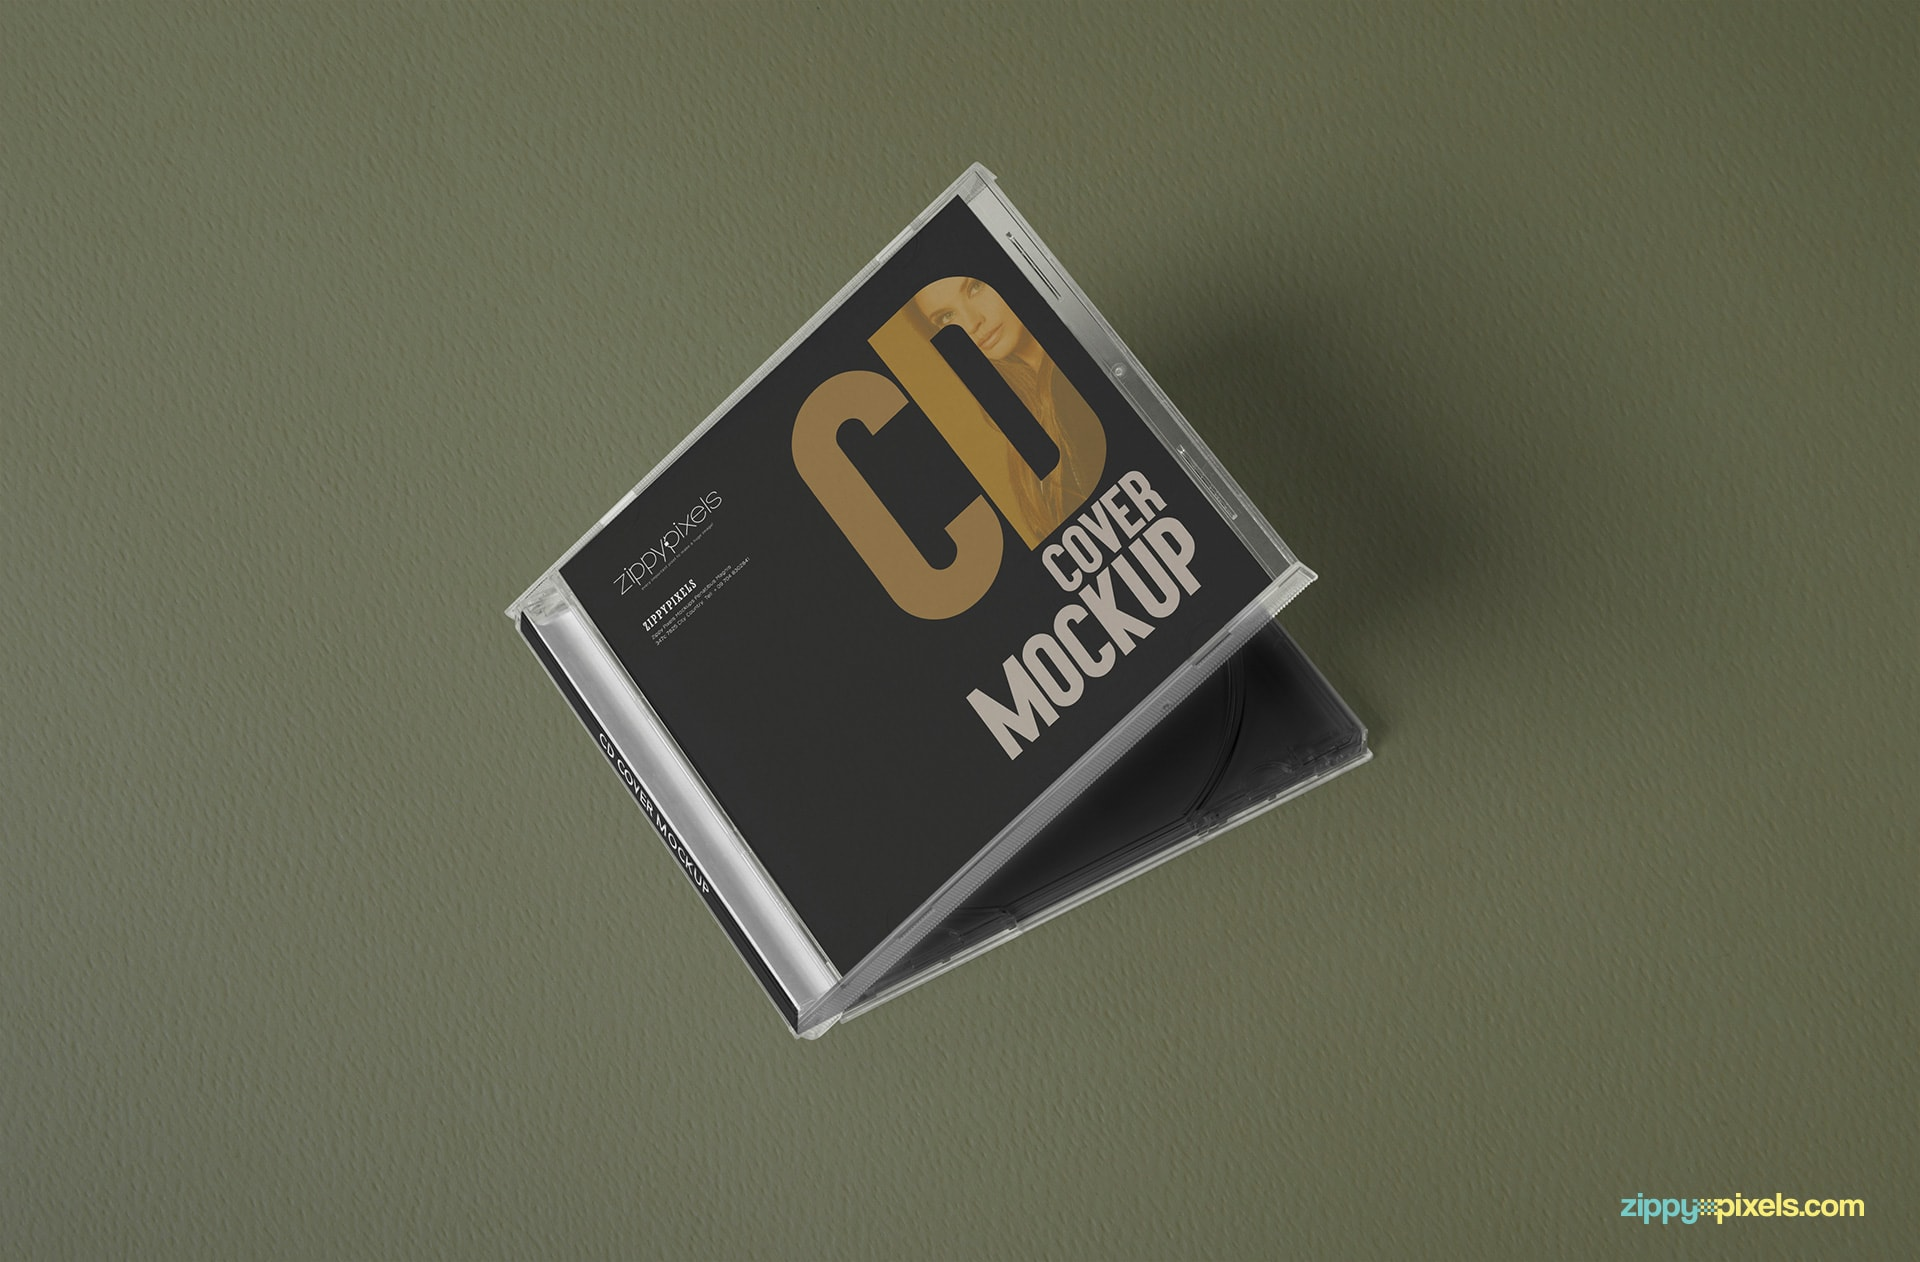 plastic-cd-jewel-case-mockup-open-cover